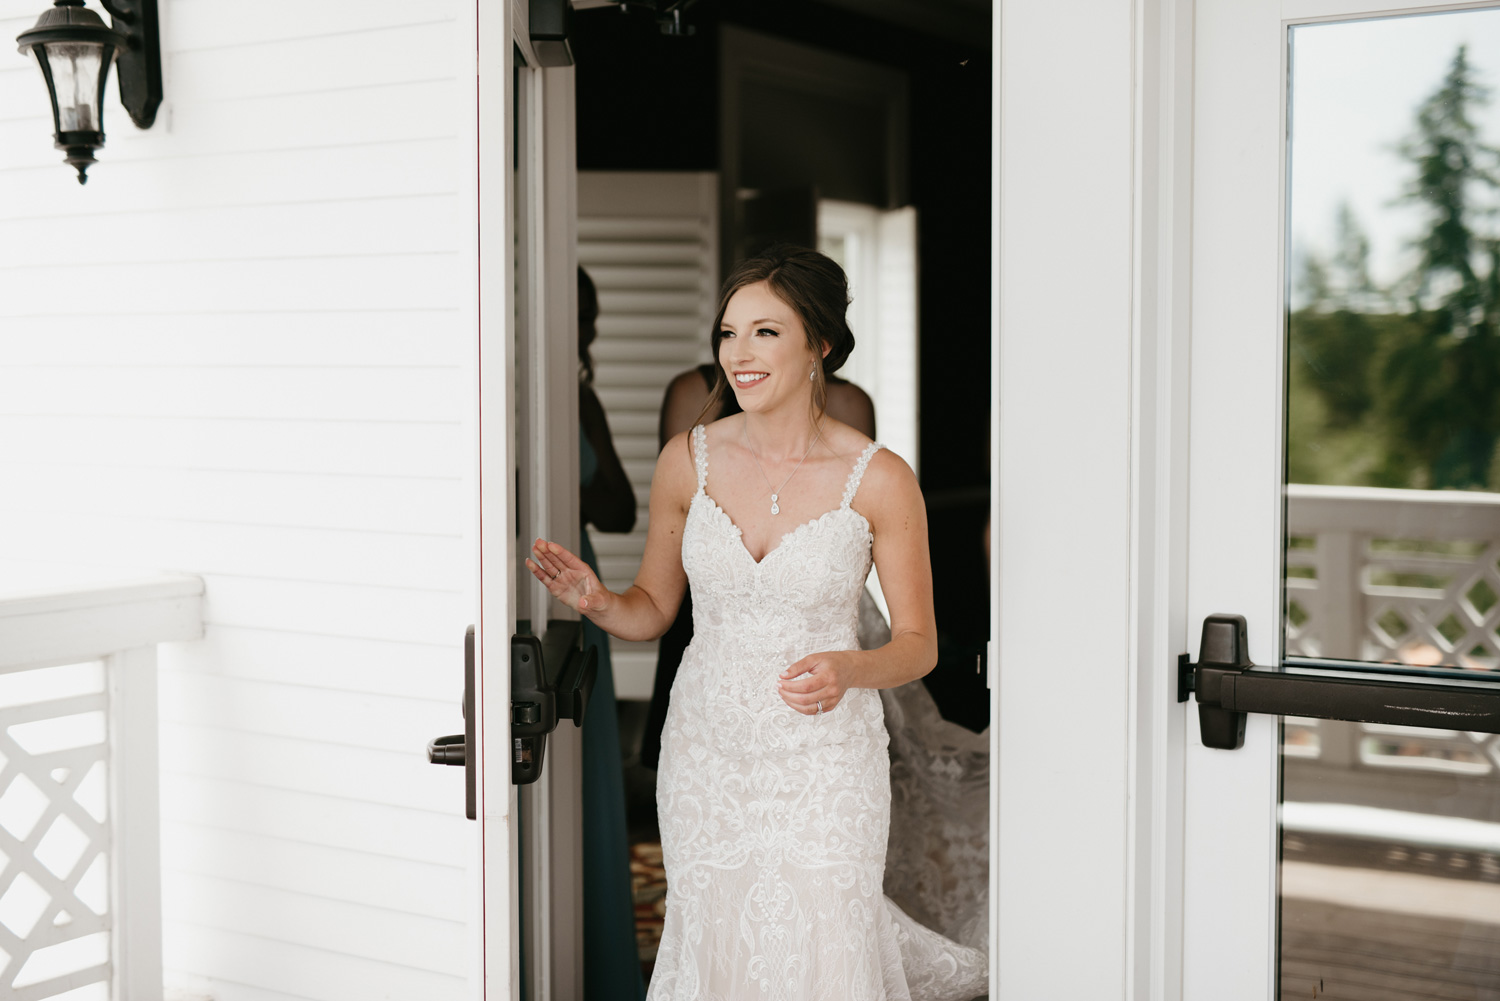 Bride coming out of doors for first look